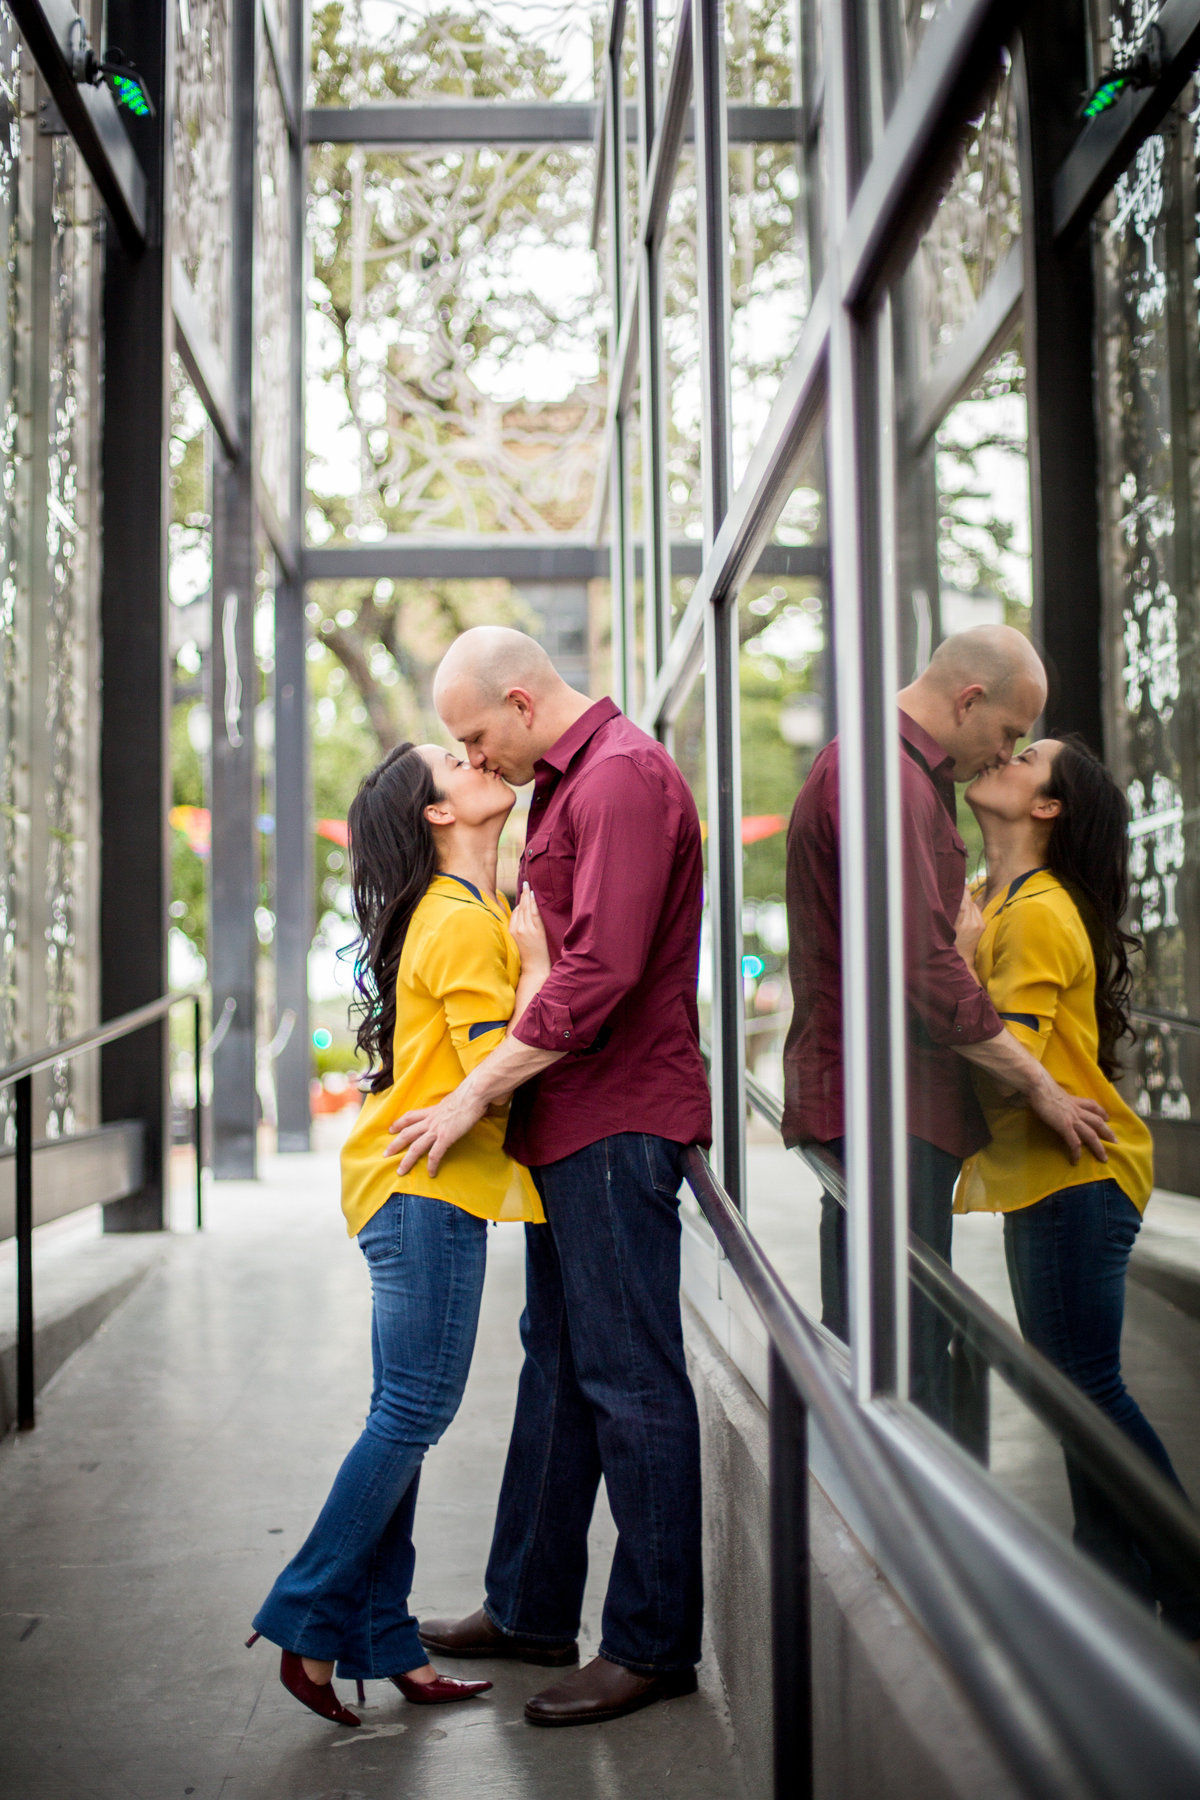 Engaged couple embracing and kissing and you can see their reflection on the building next to them.